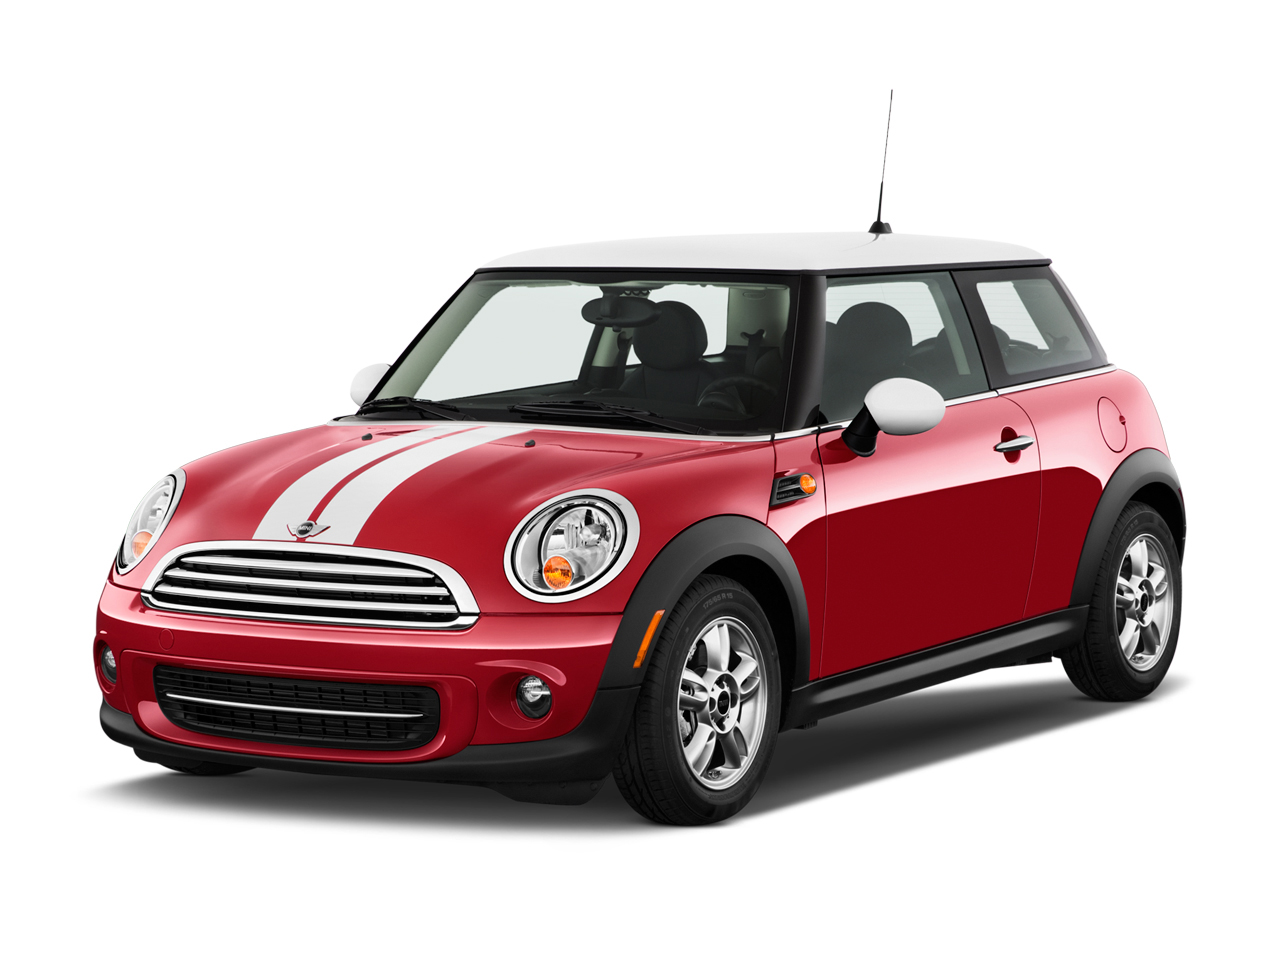 2013 mini cooper quality review the car connection. Black Bedroom Furniture Sets. Home Design Ideas